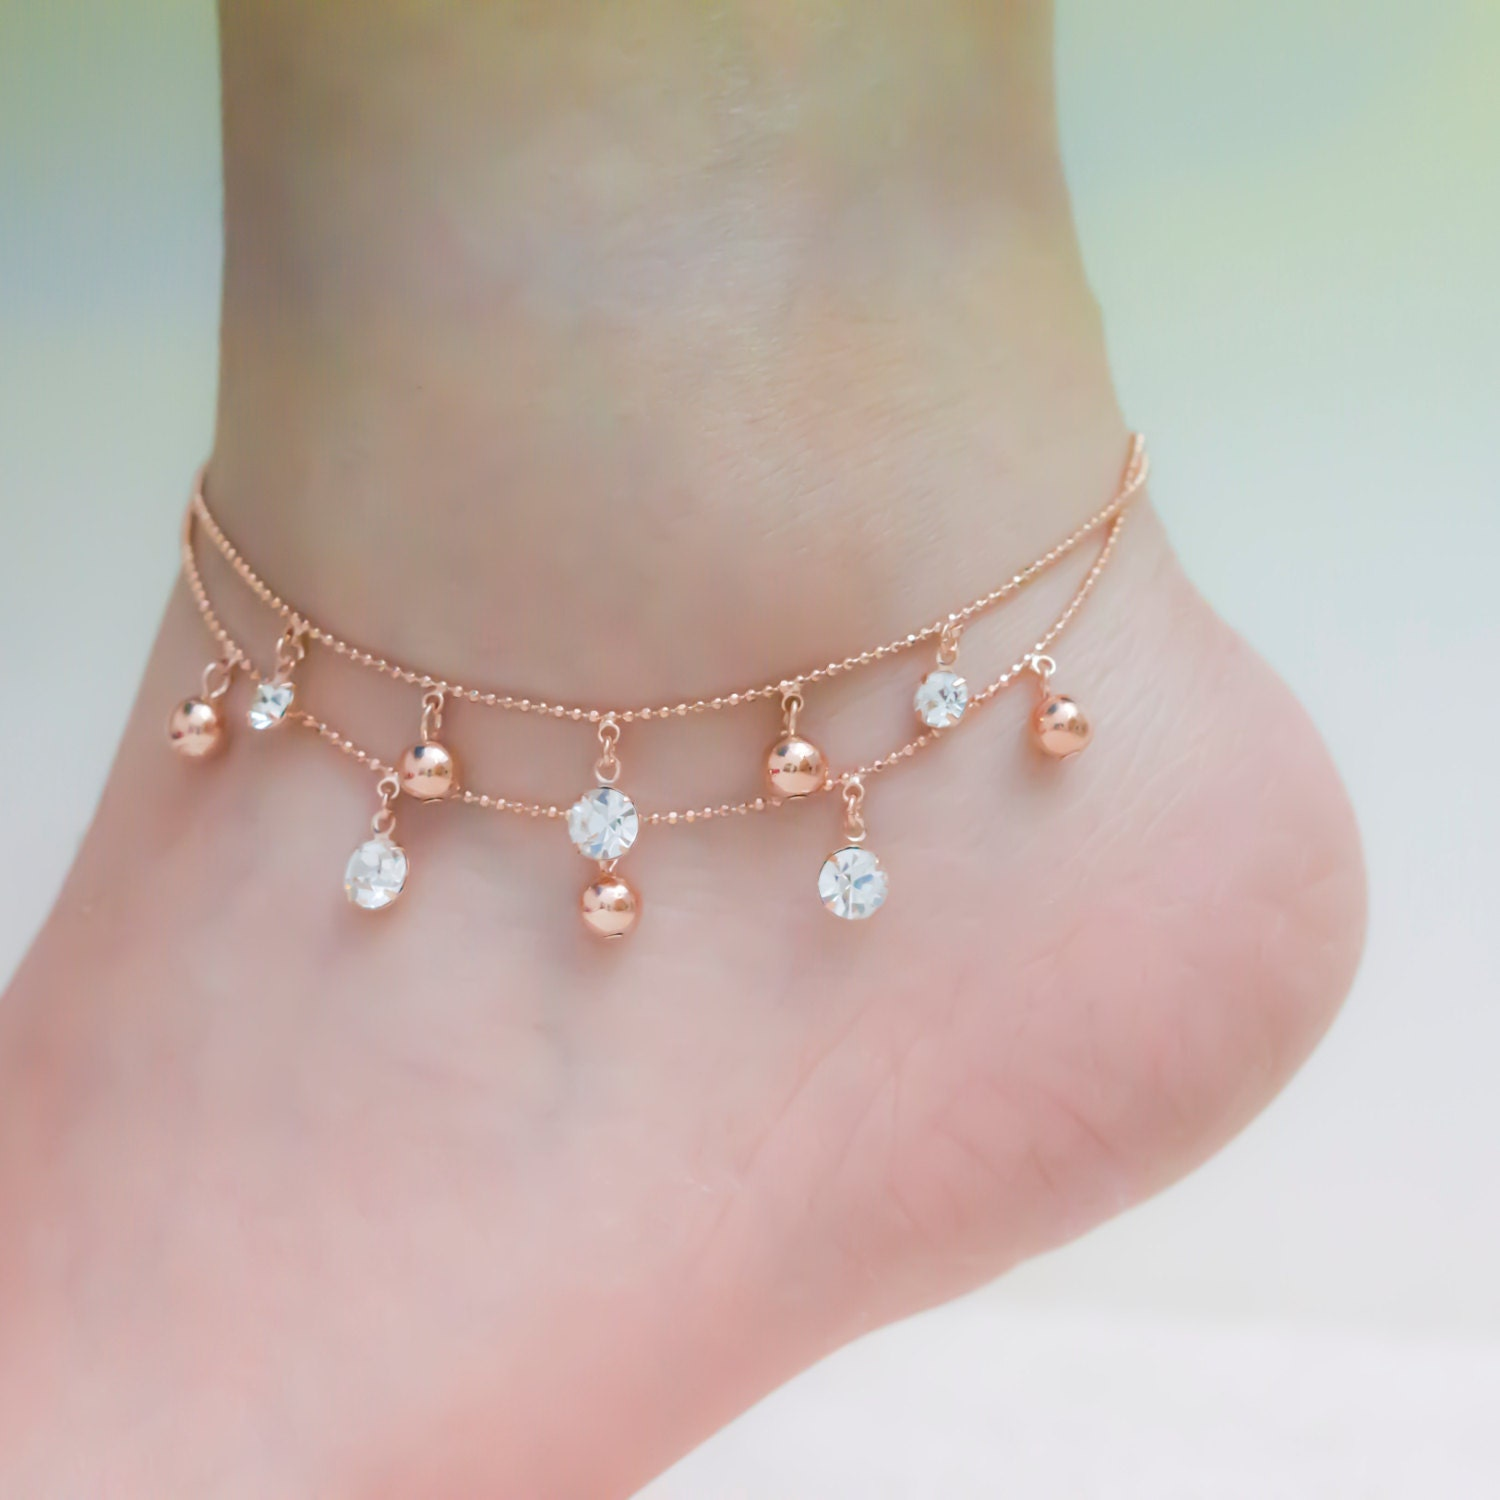 sdzi anniversary product cocktail bracelet solid tennis anklet b jewels il j large fullxfull gold r diamond